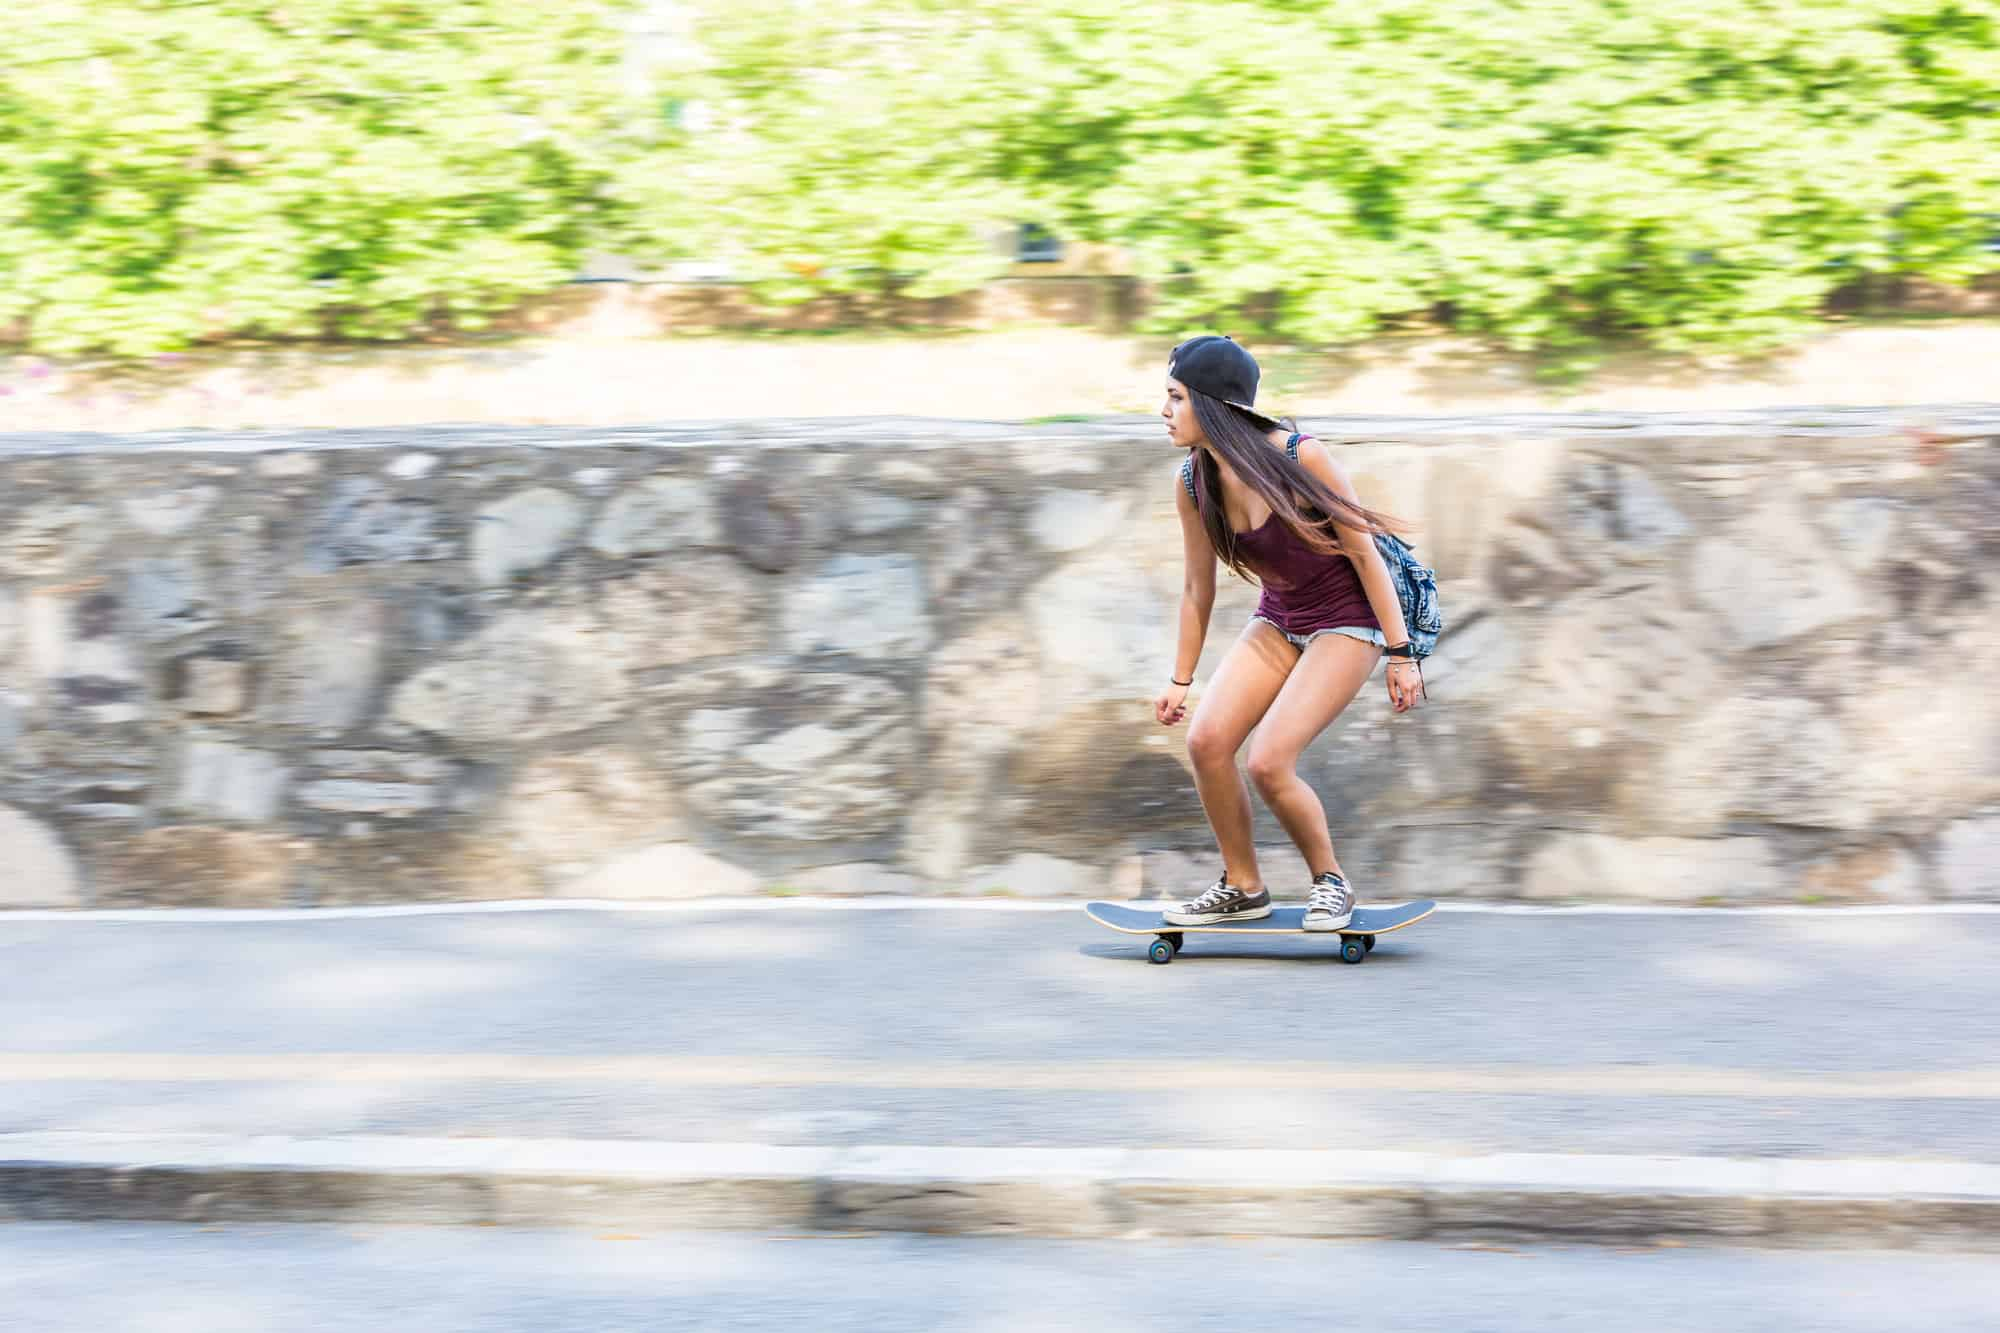 how to make your skateboard faster